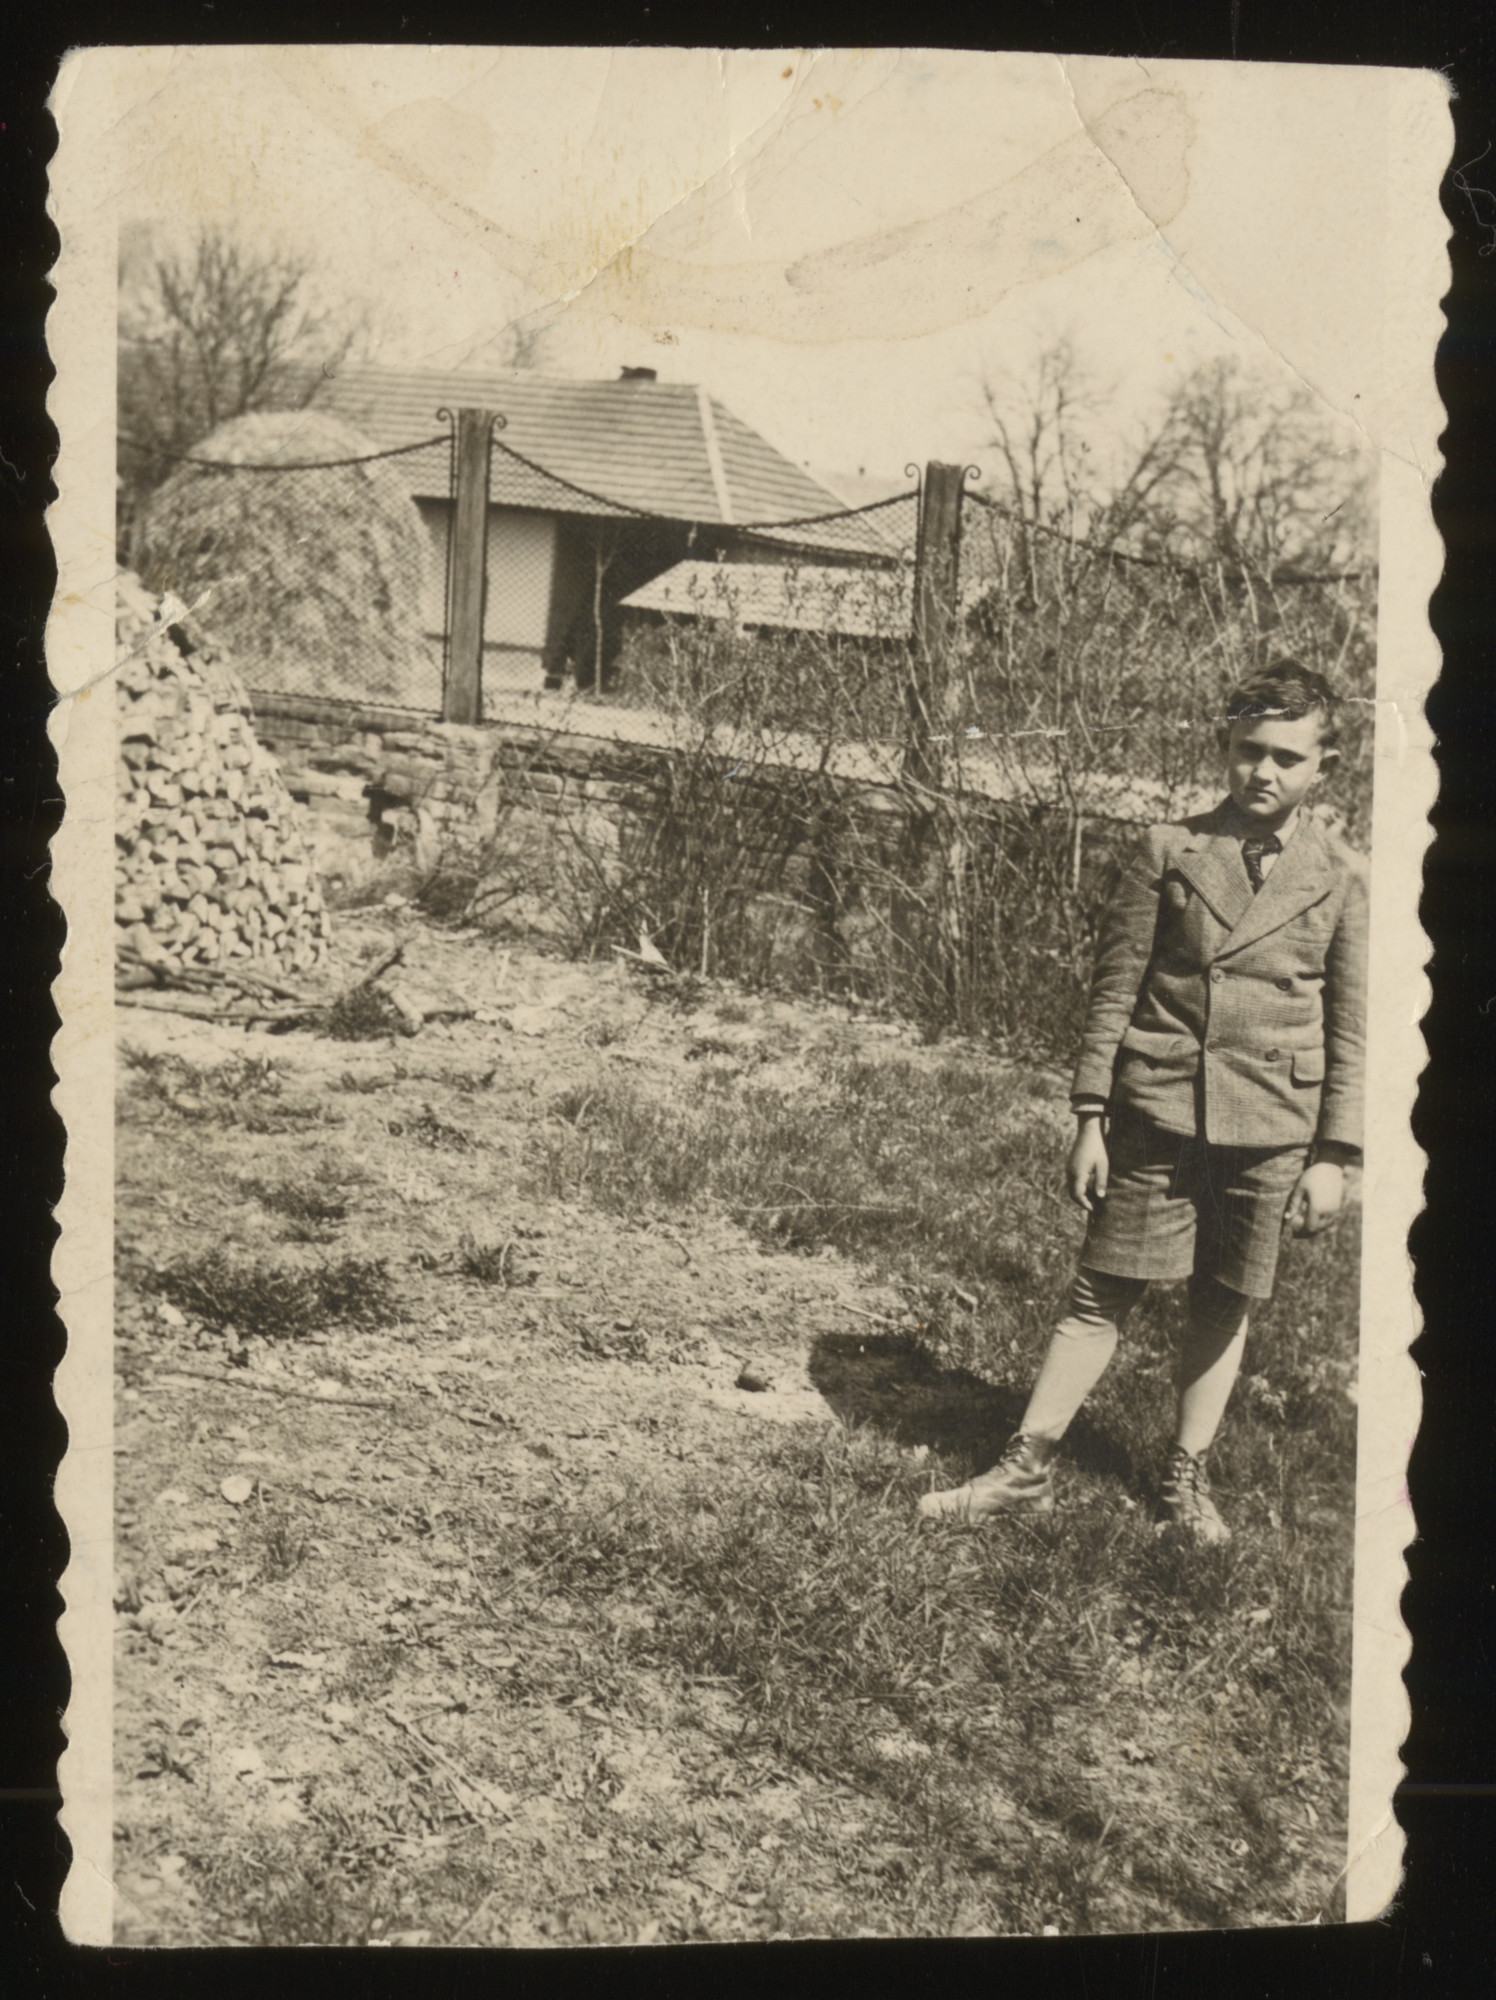 Gabriel Groszman poses in the yard adjacent to a home.